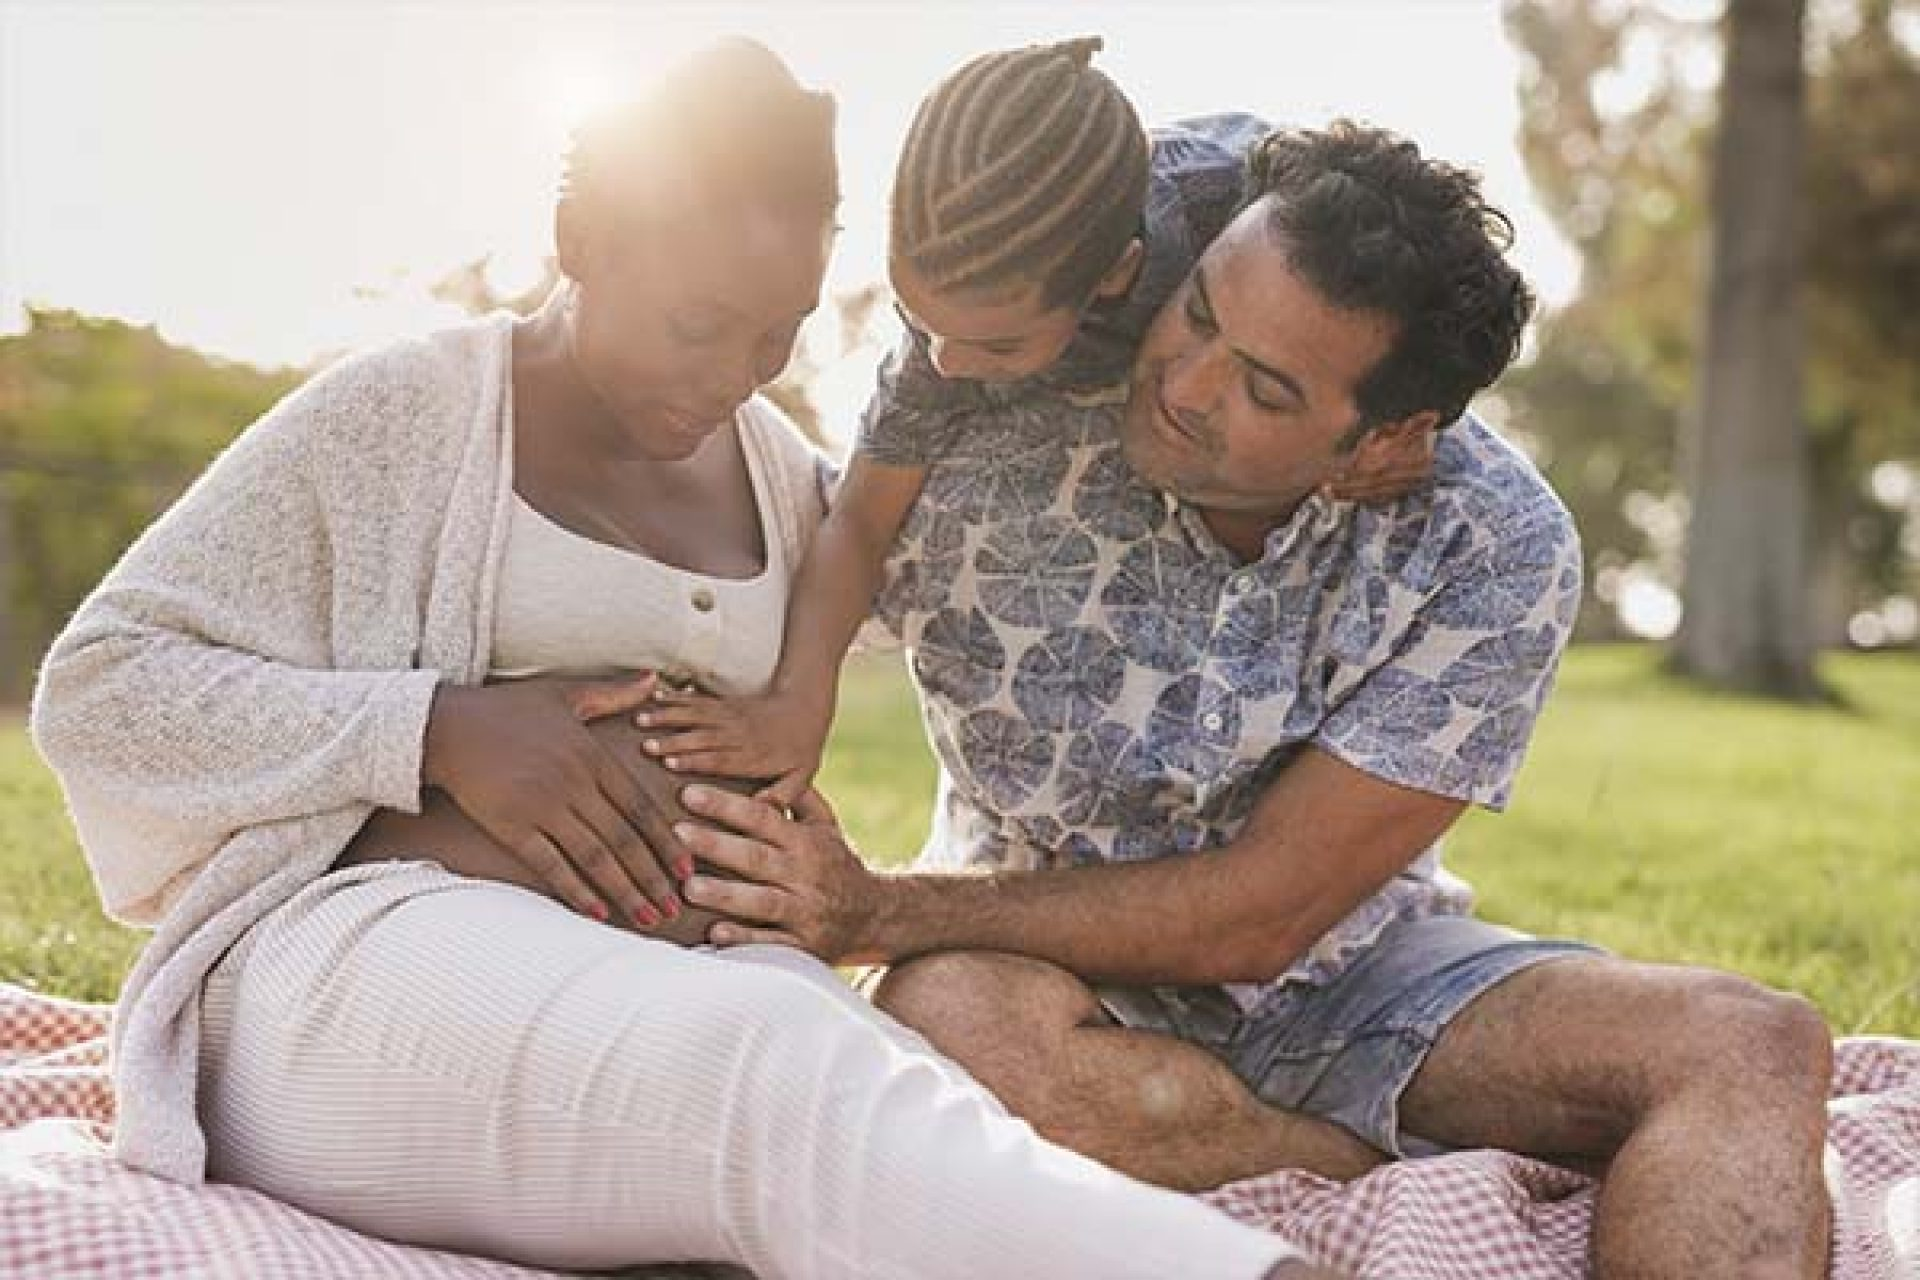 How Does a Light Period Affect Fertility? And what to do to fix it